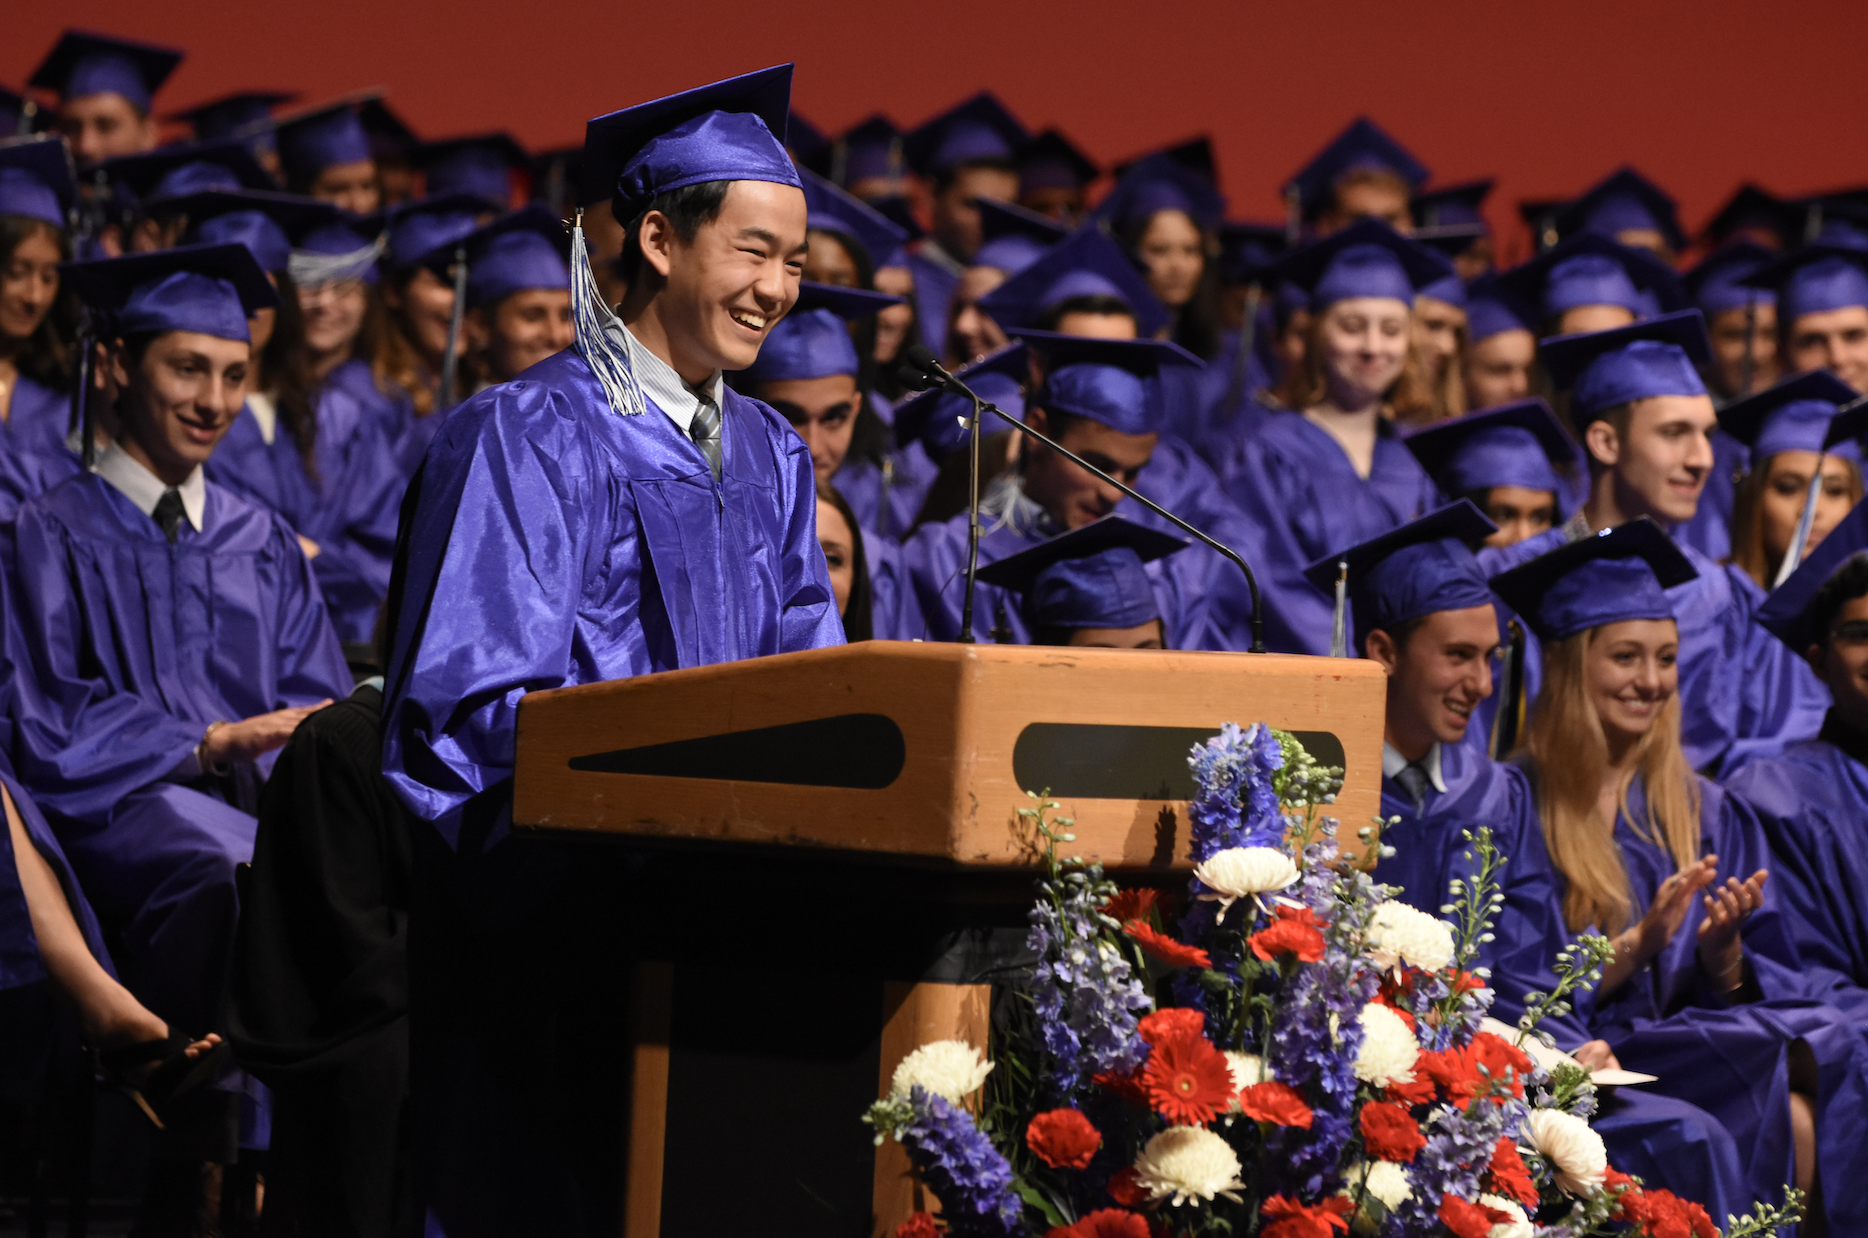 Valedictorian Alan Chang addresses the crowd and his class.